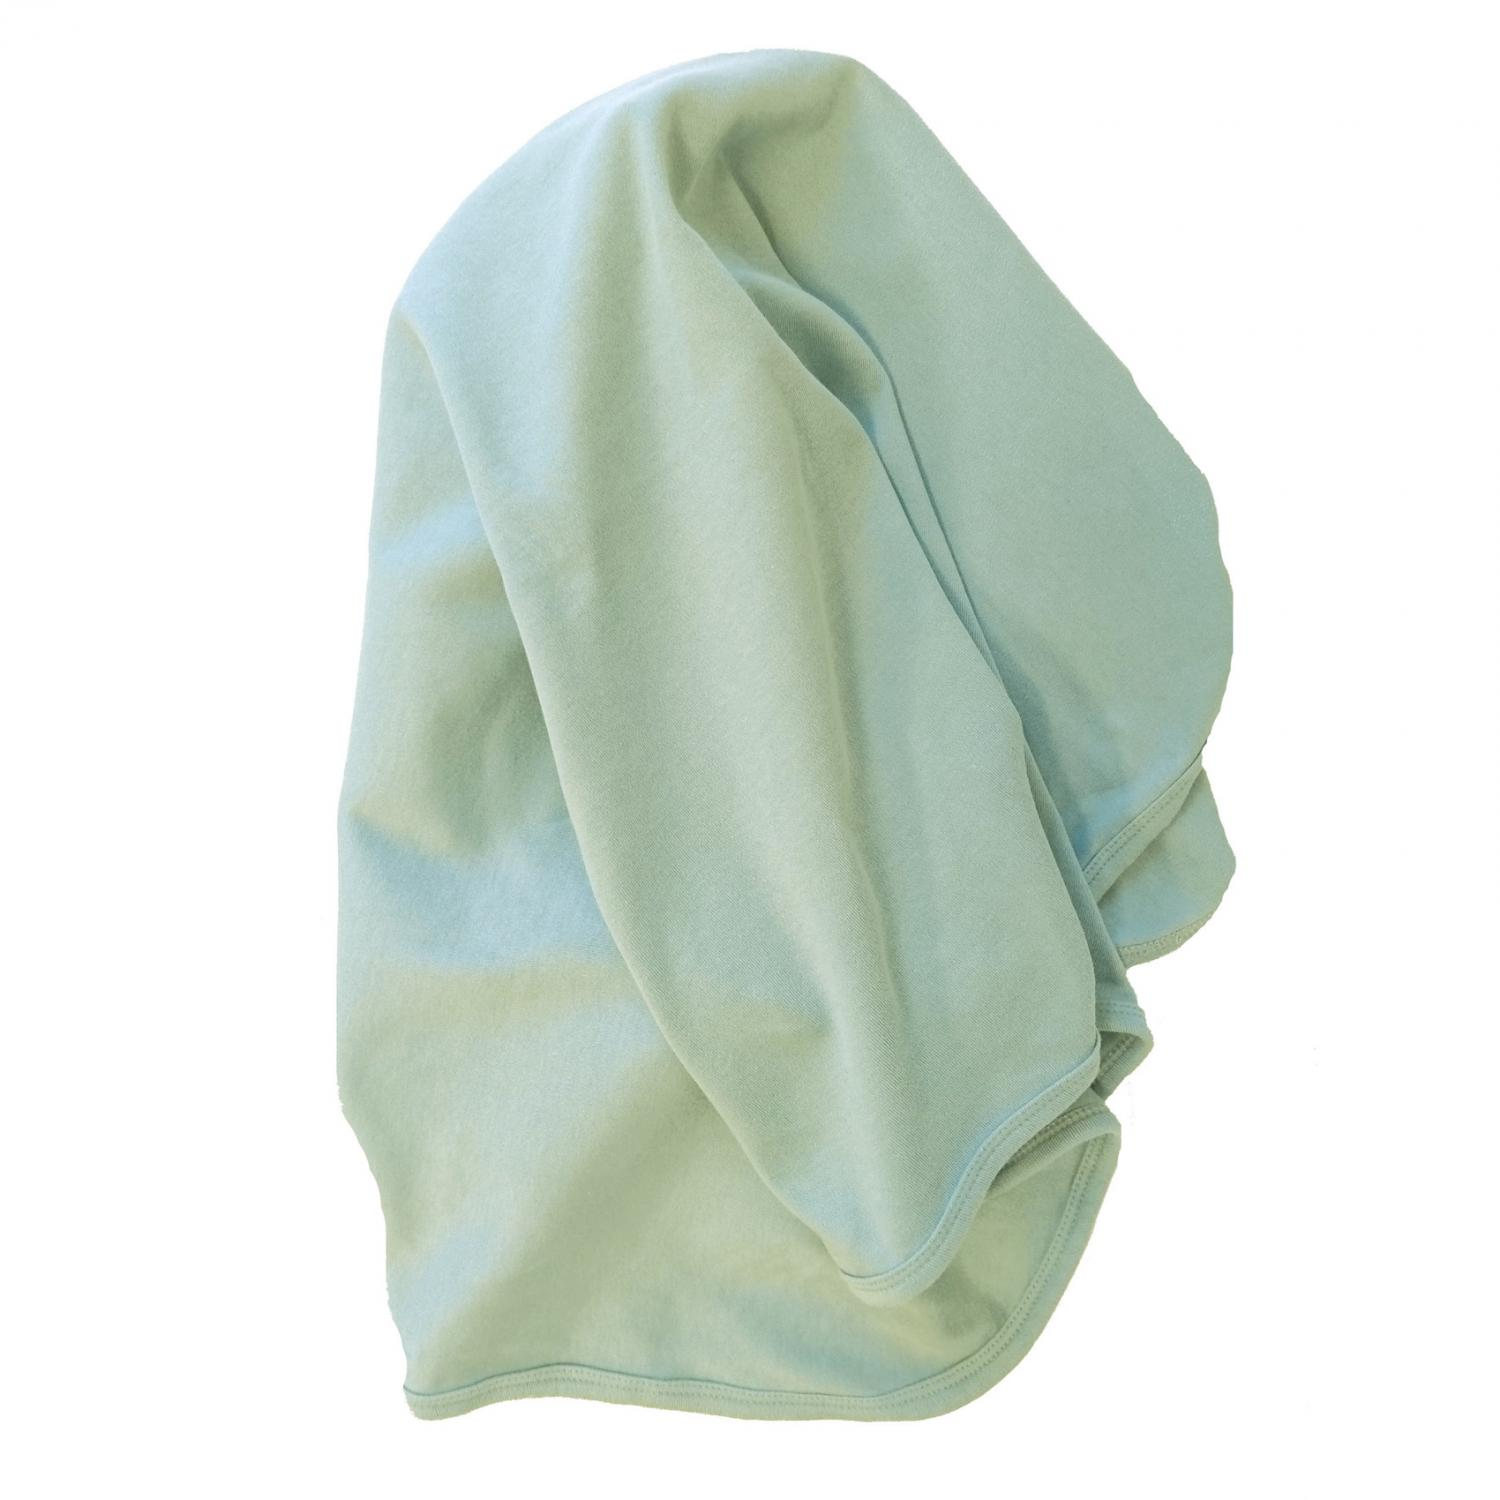 Baby blanket in soft mint color. Organic and GOTS-certified cotton.